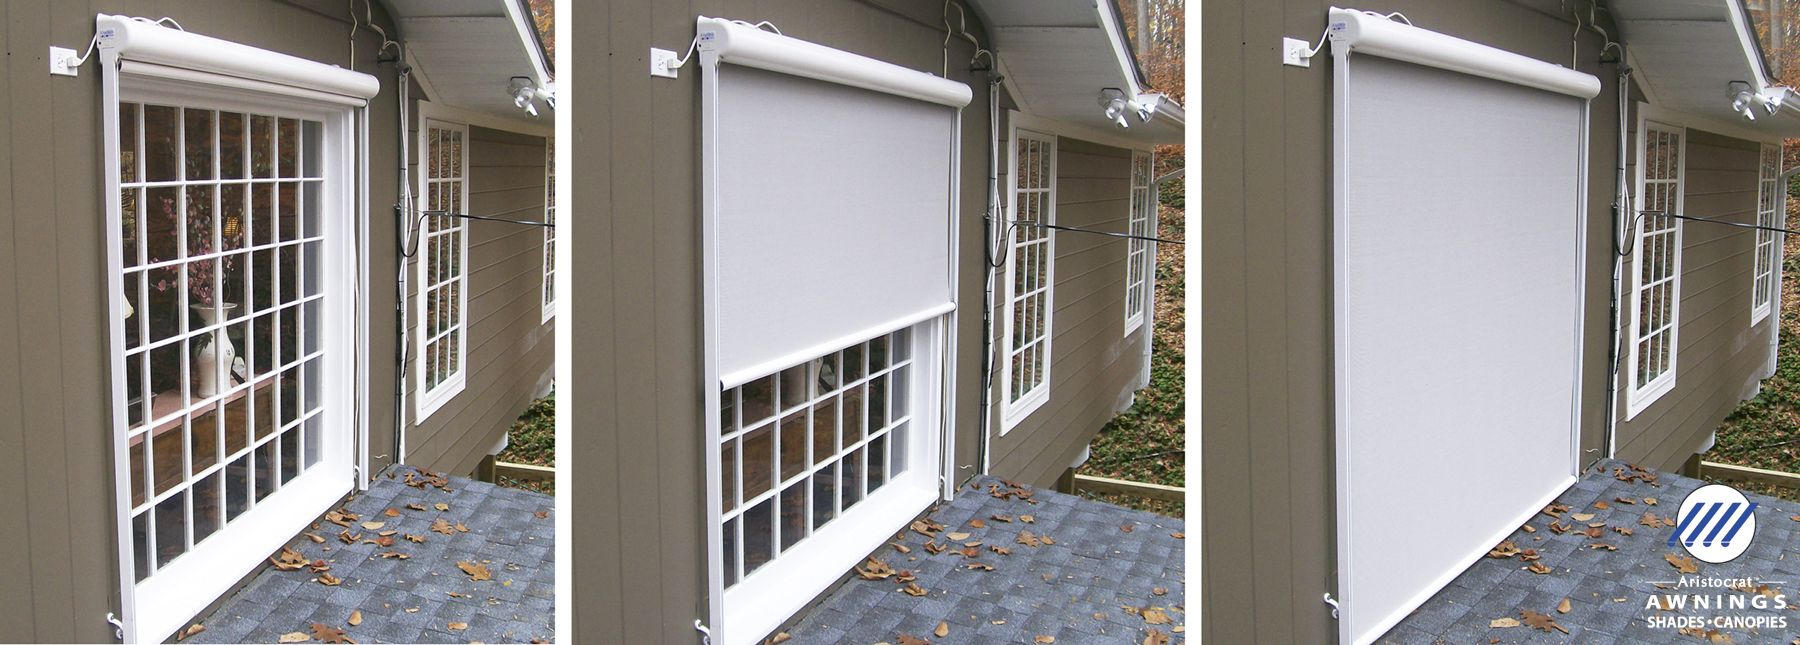 door plain sizes black remaining patio retractable window outside arm m awnings out folding buy h awning s roll outdoor